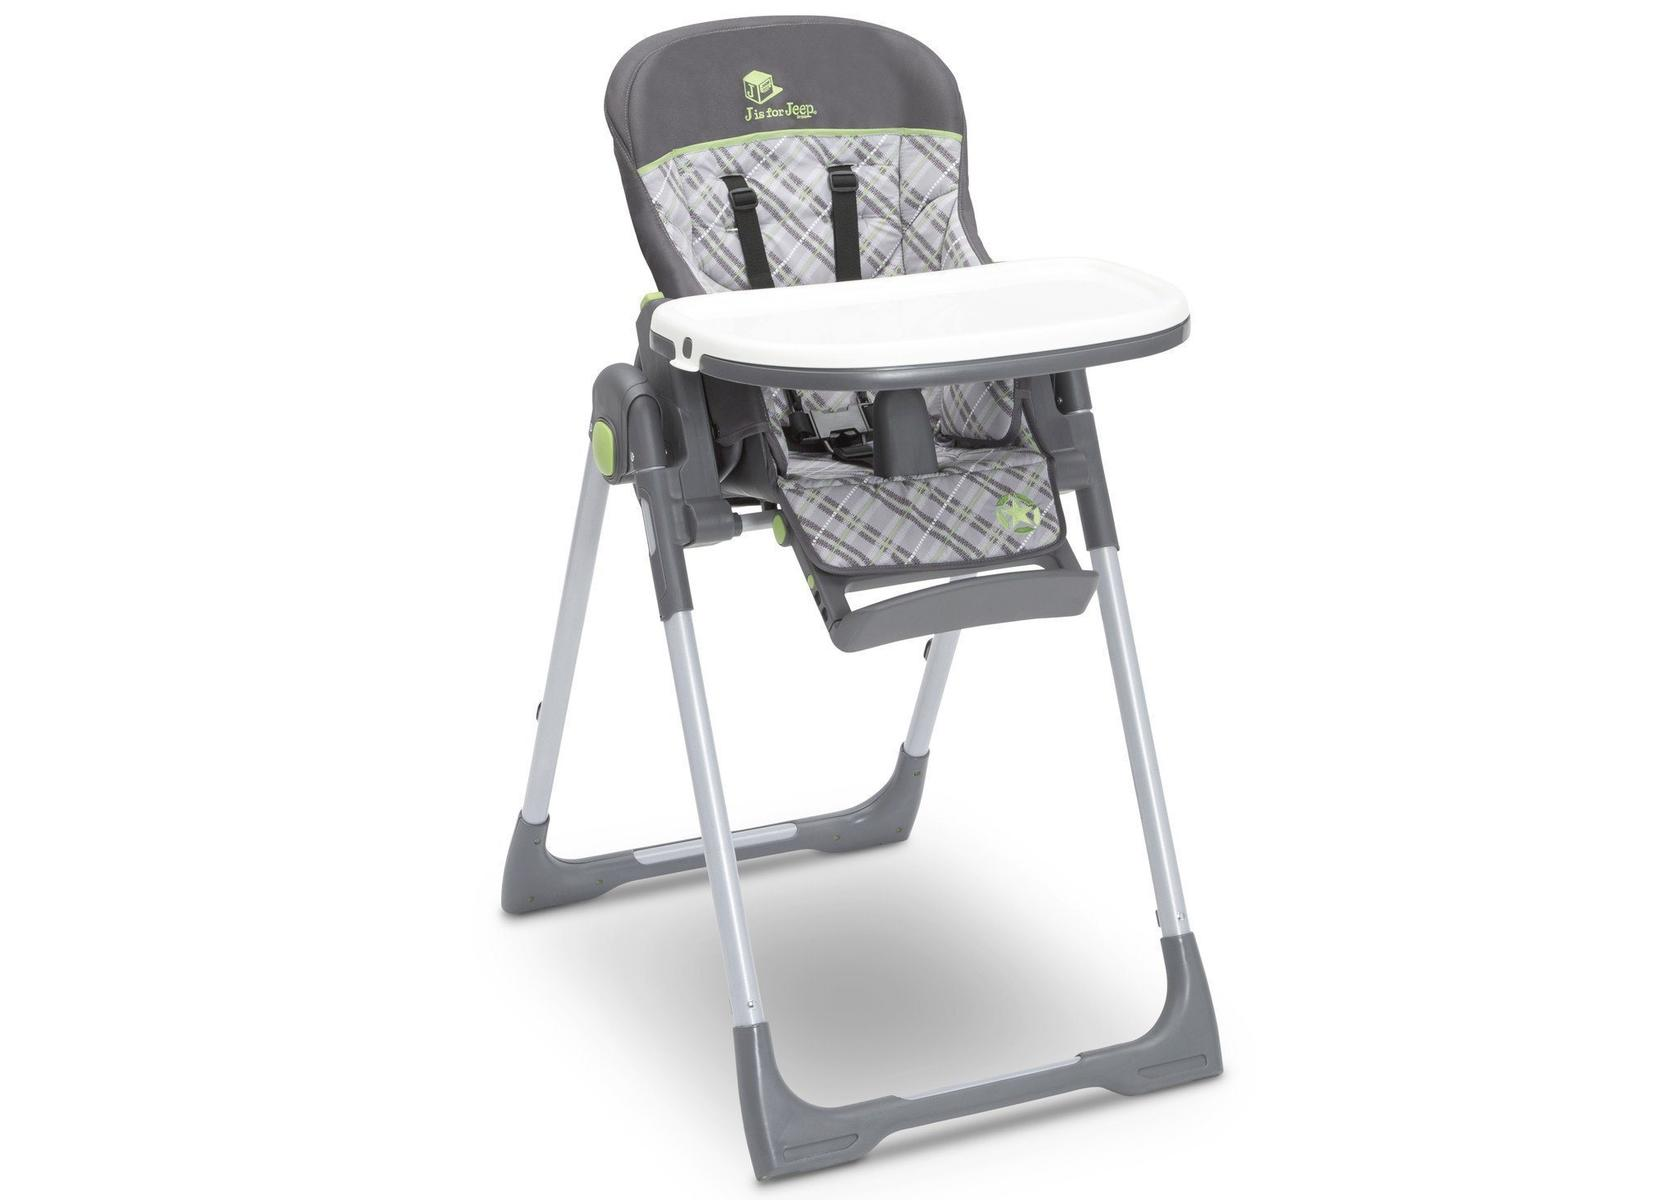 Jeep By Delta Children's Classic High Chair